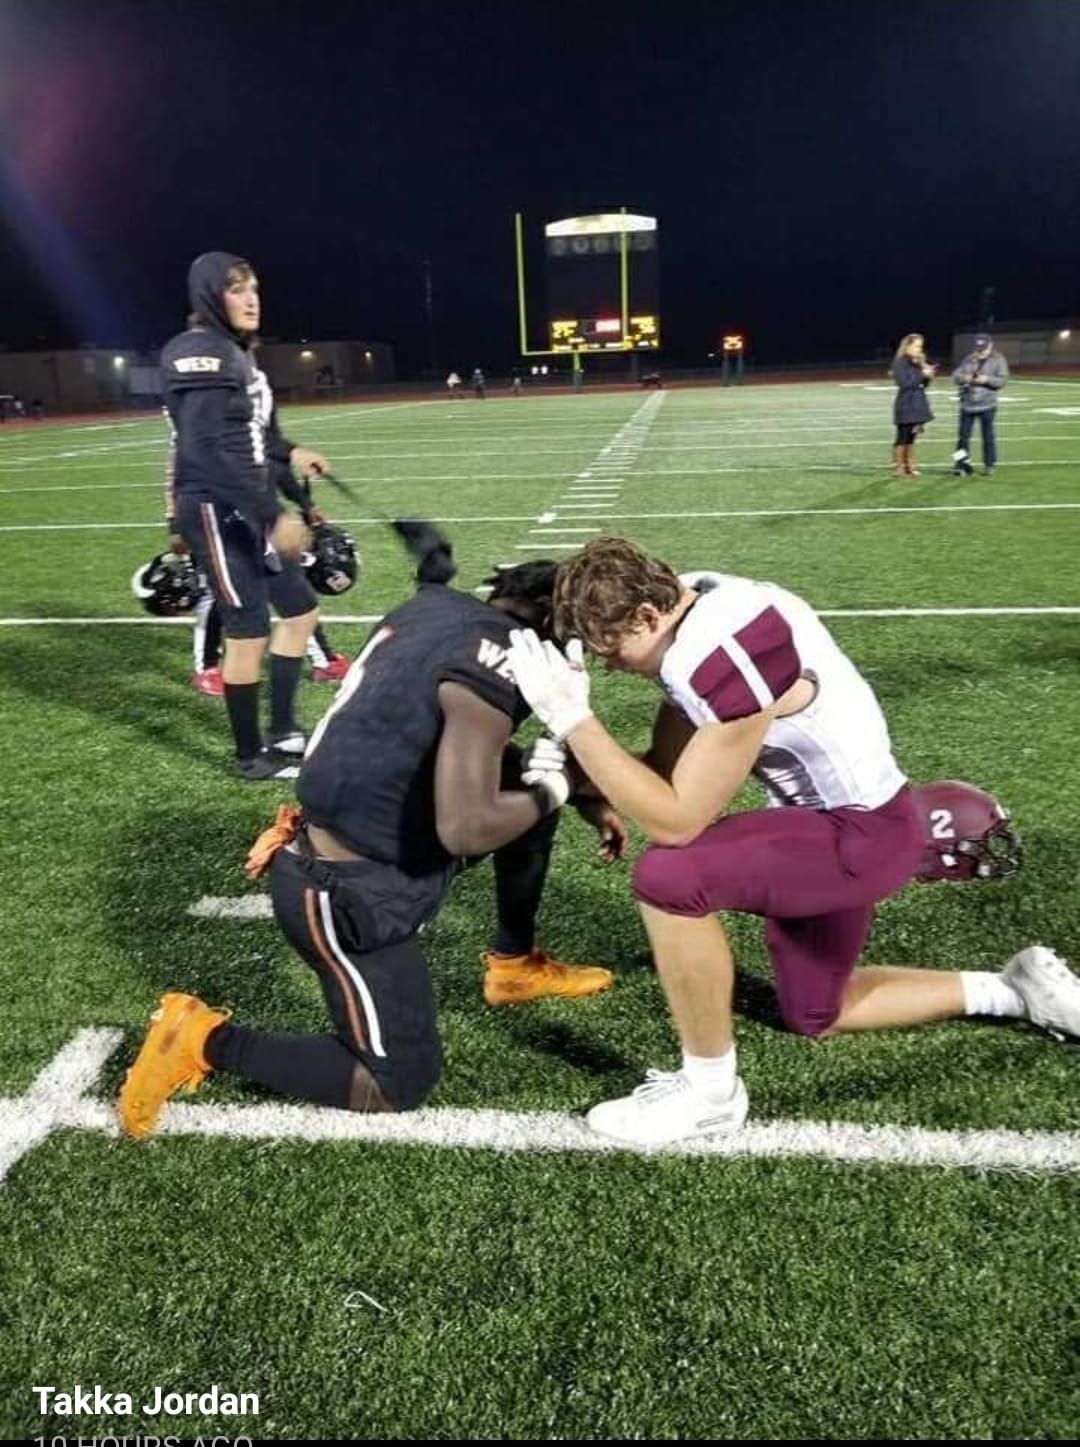 High school football player goes viral for praying with